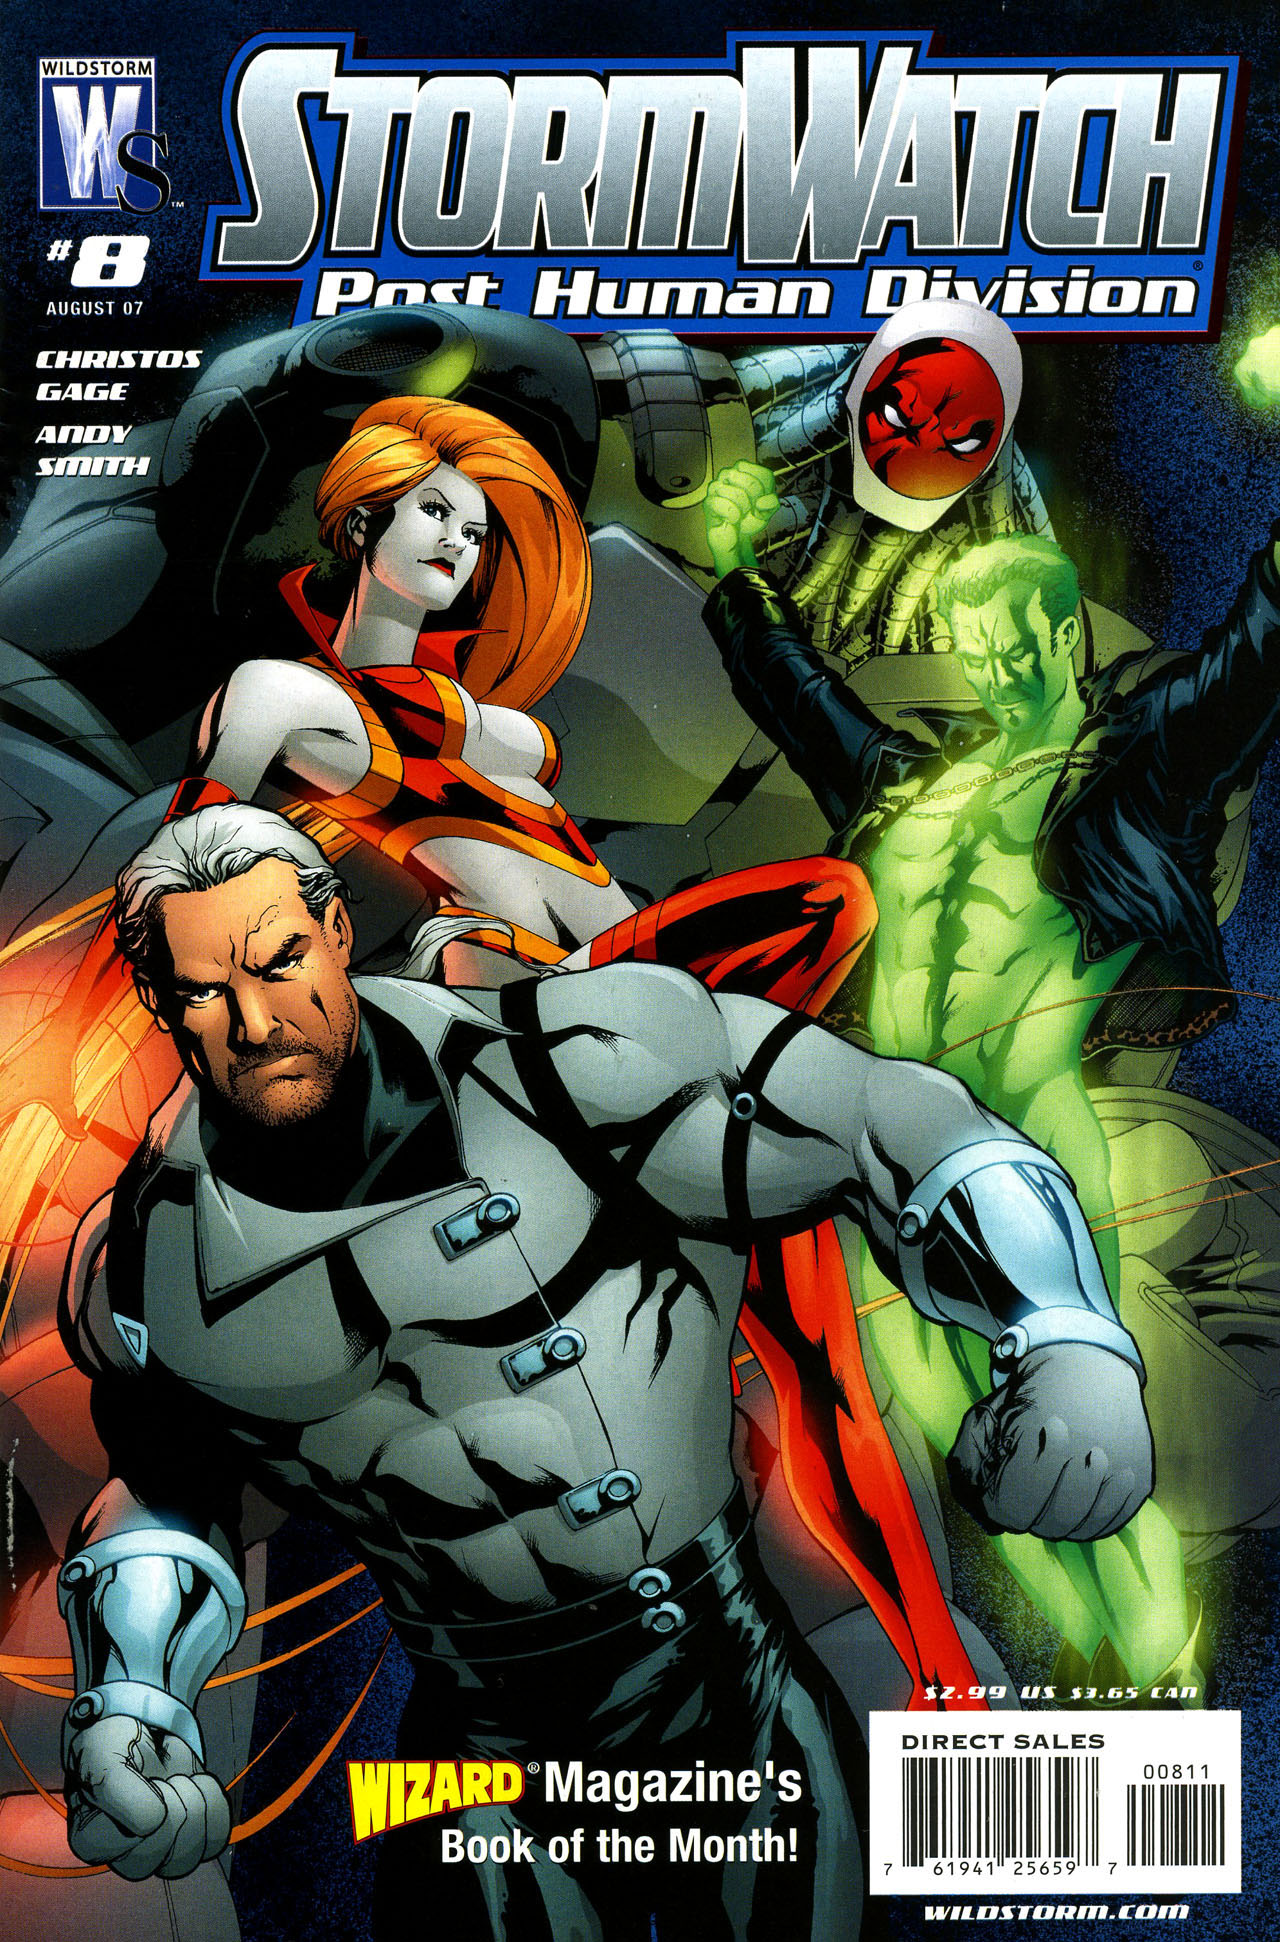 Stormwatch: Post Human Division Vol 1 8